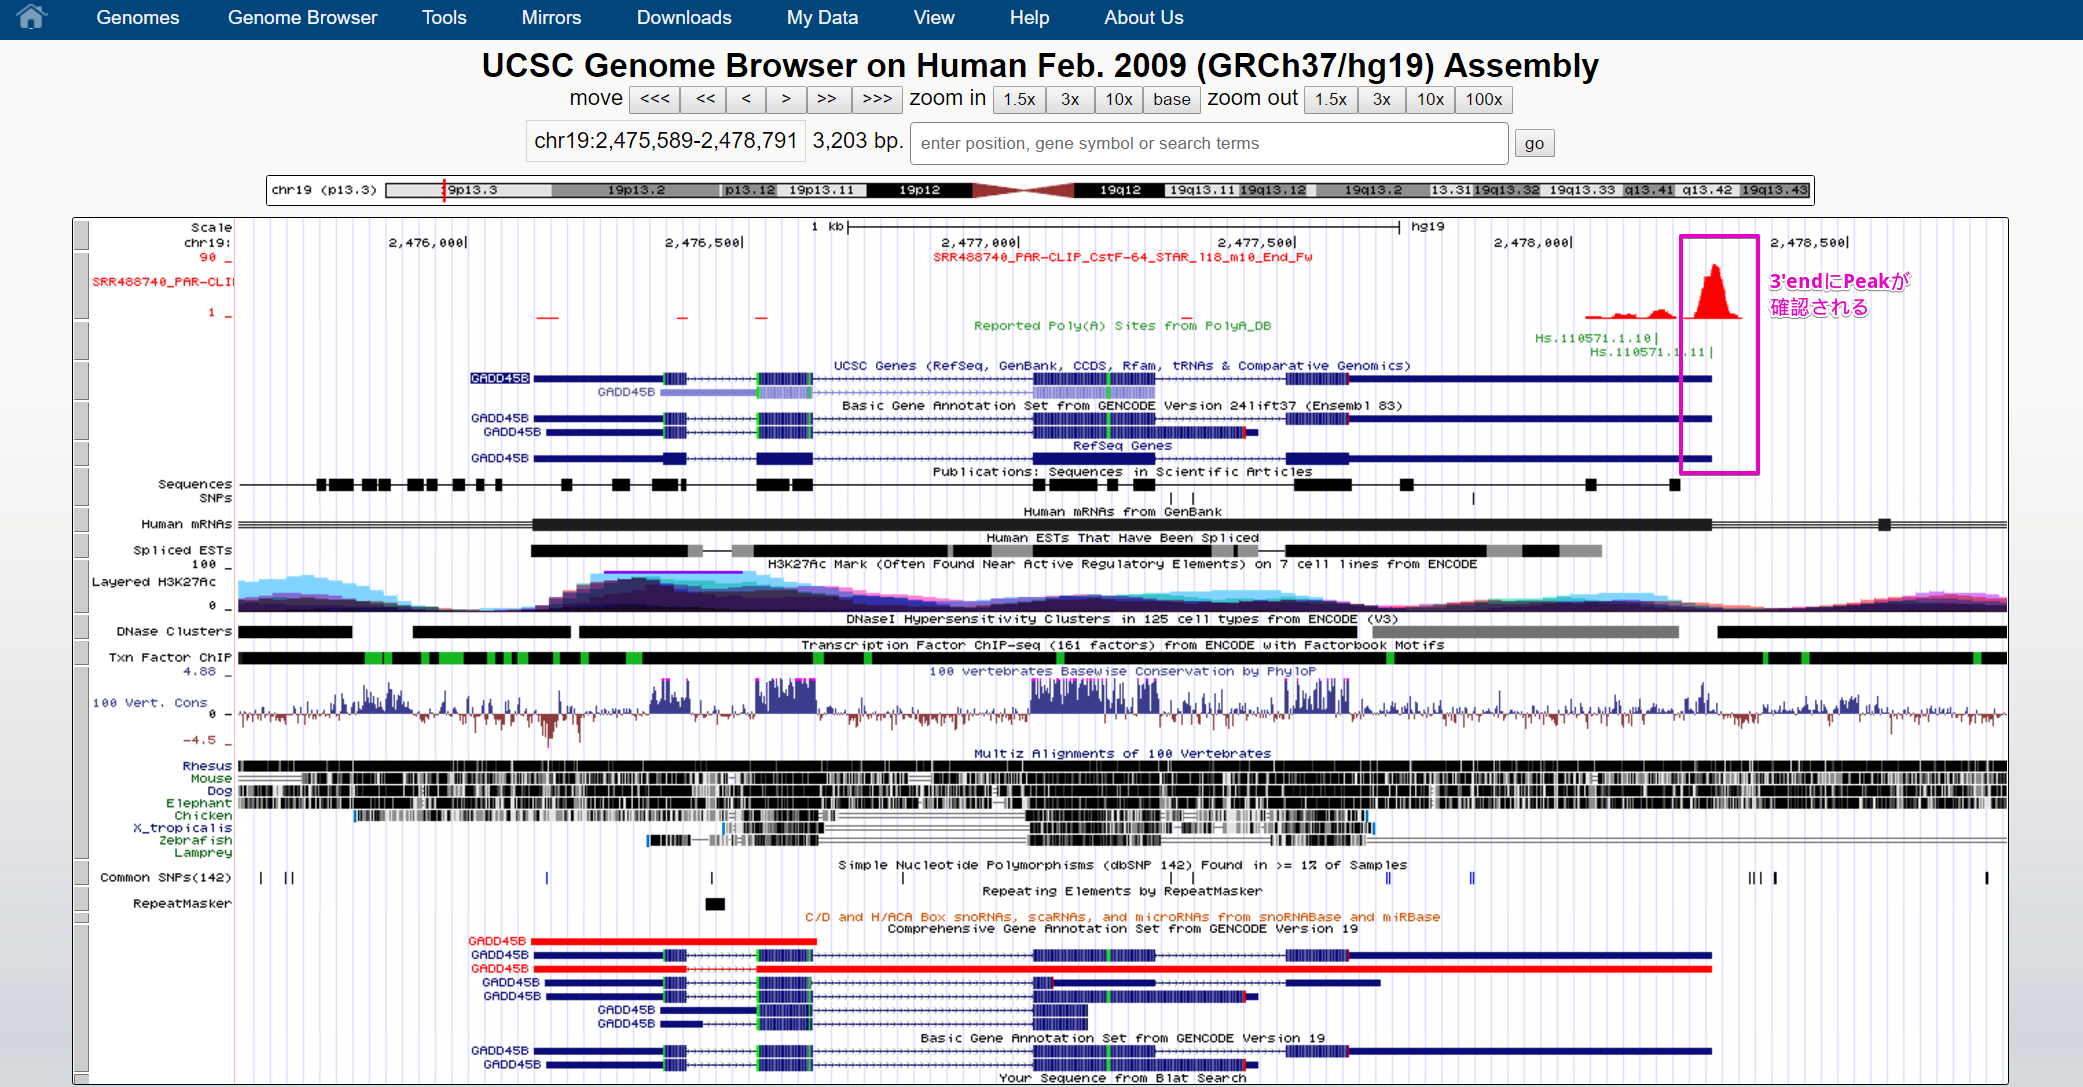 Human chr19_2475589-2478791 - UCSC Genome Browser v343 - Google Chrome 2017-01-18 17.17.50.png (629.1 kB)